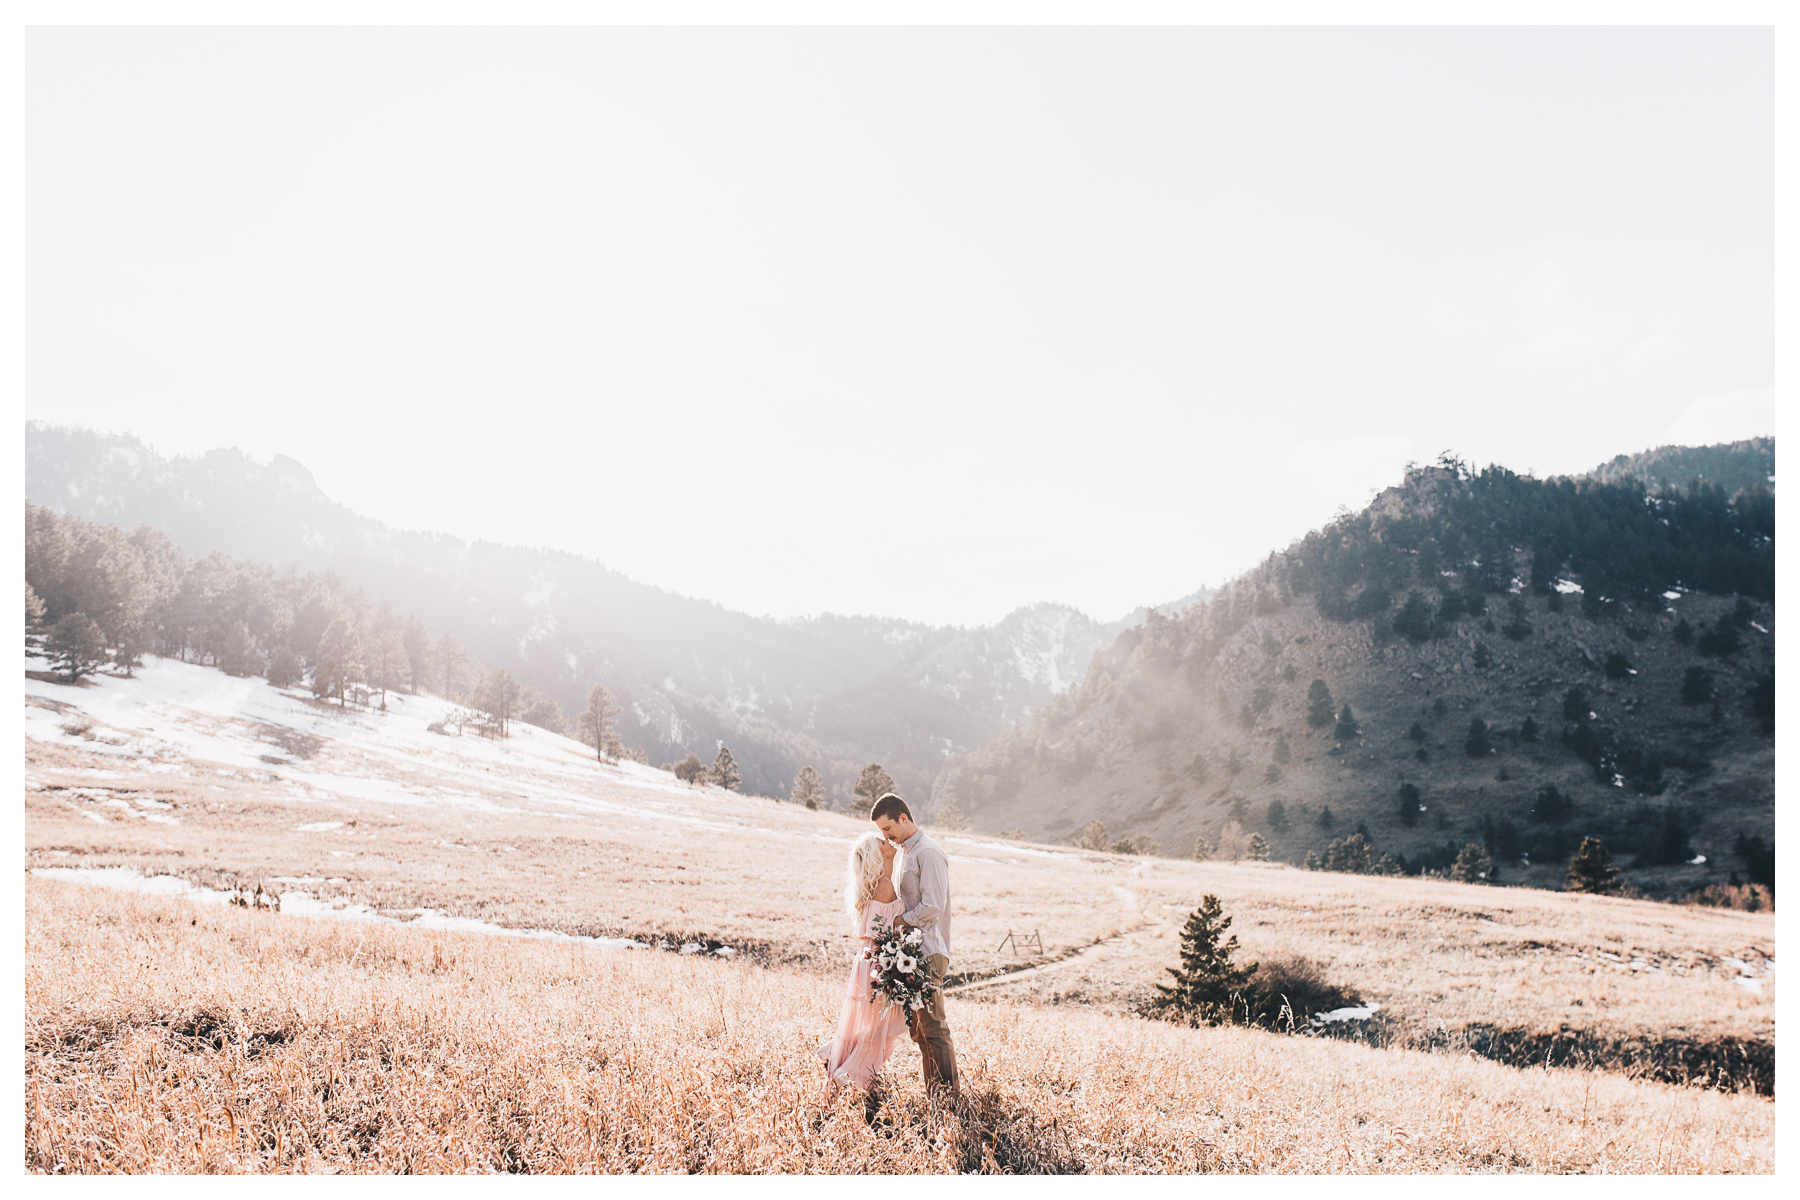 Colorado Wedding Photographer, Colorado Elopement Photographer, Boulder Elopement Photographer, Adventurous Couples Photos, Mountain Elopement